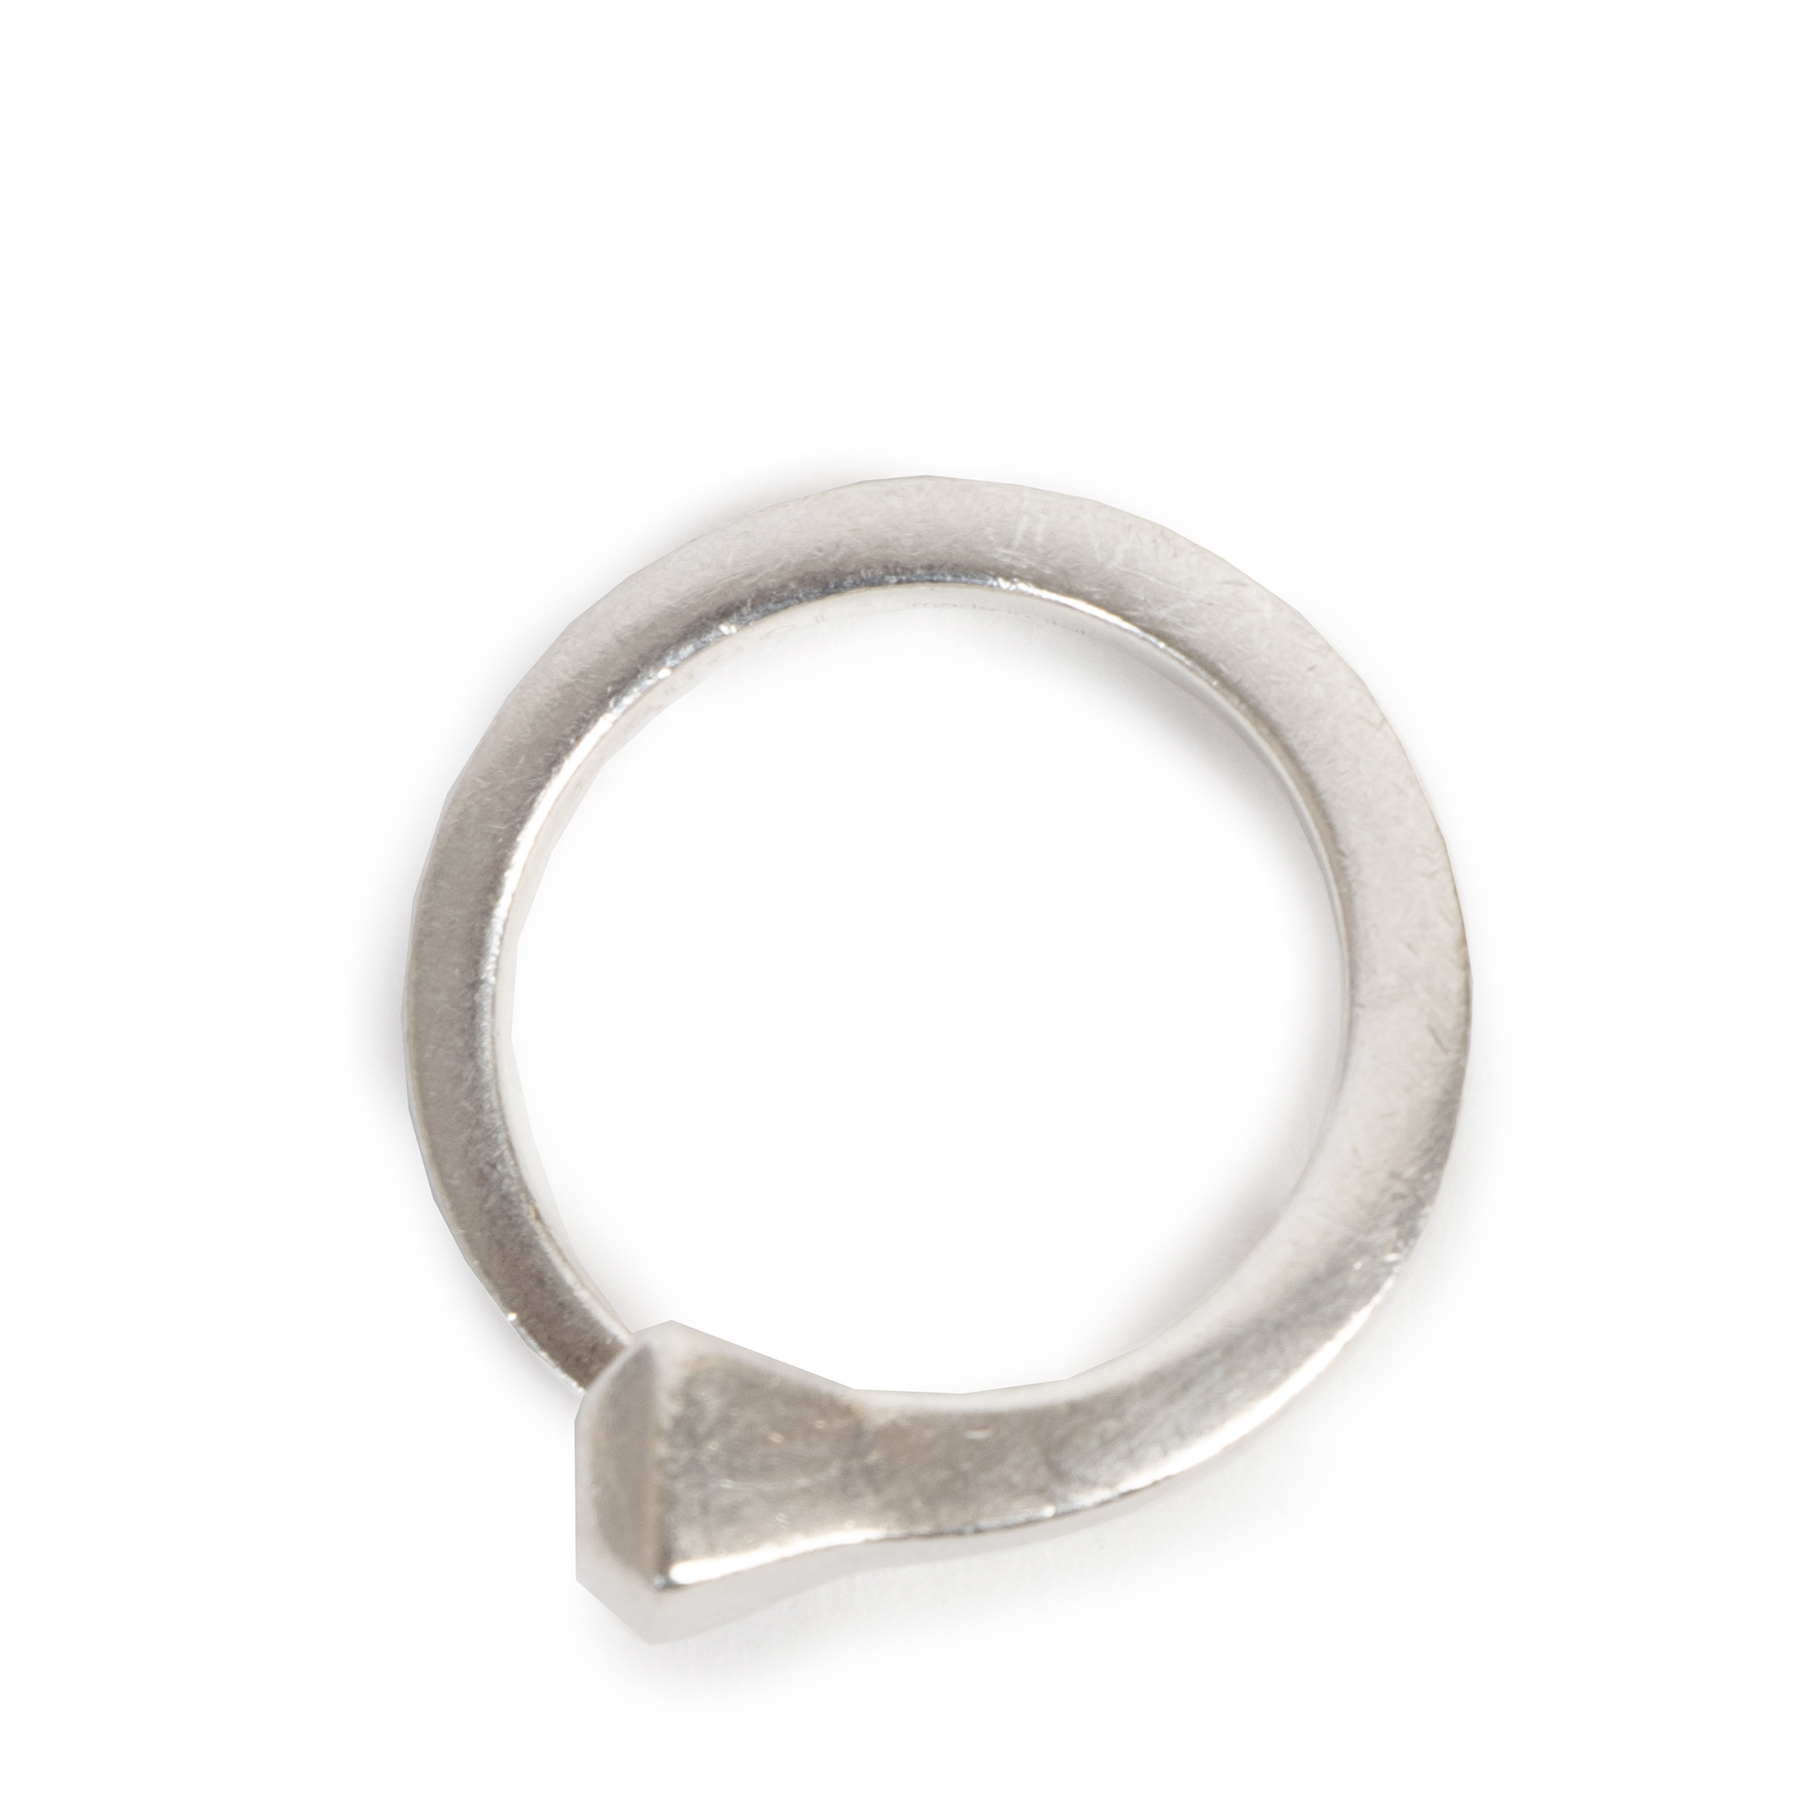 Buy authentic secondhand Gucci rings at labelLOV Antwerp